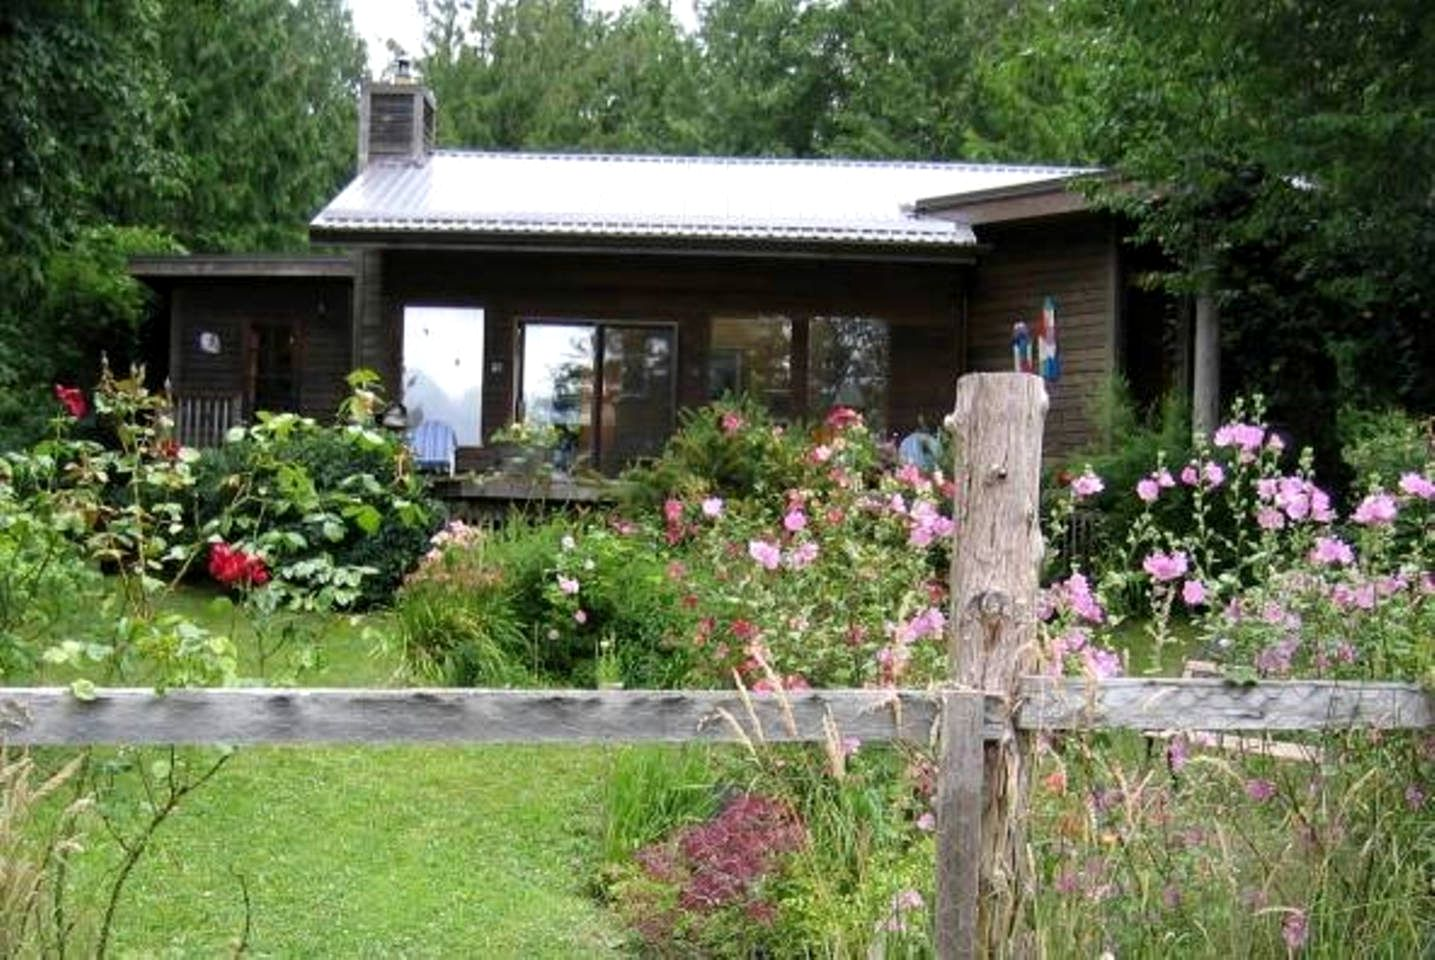 Cottages (Hornby Island, British Columbia, Canada)